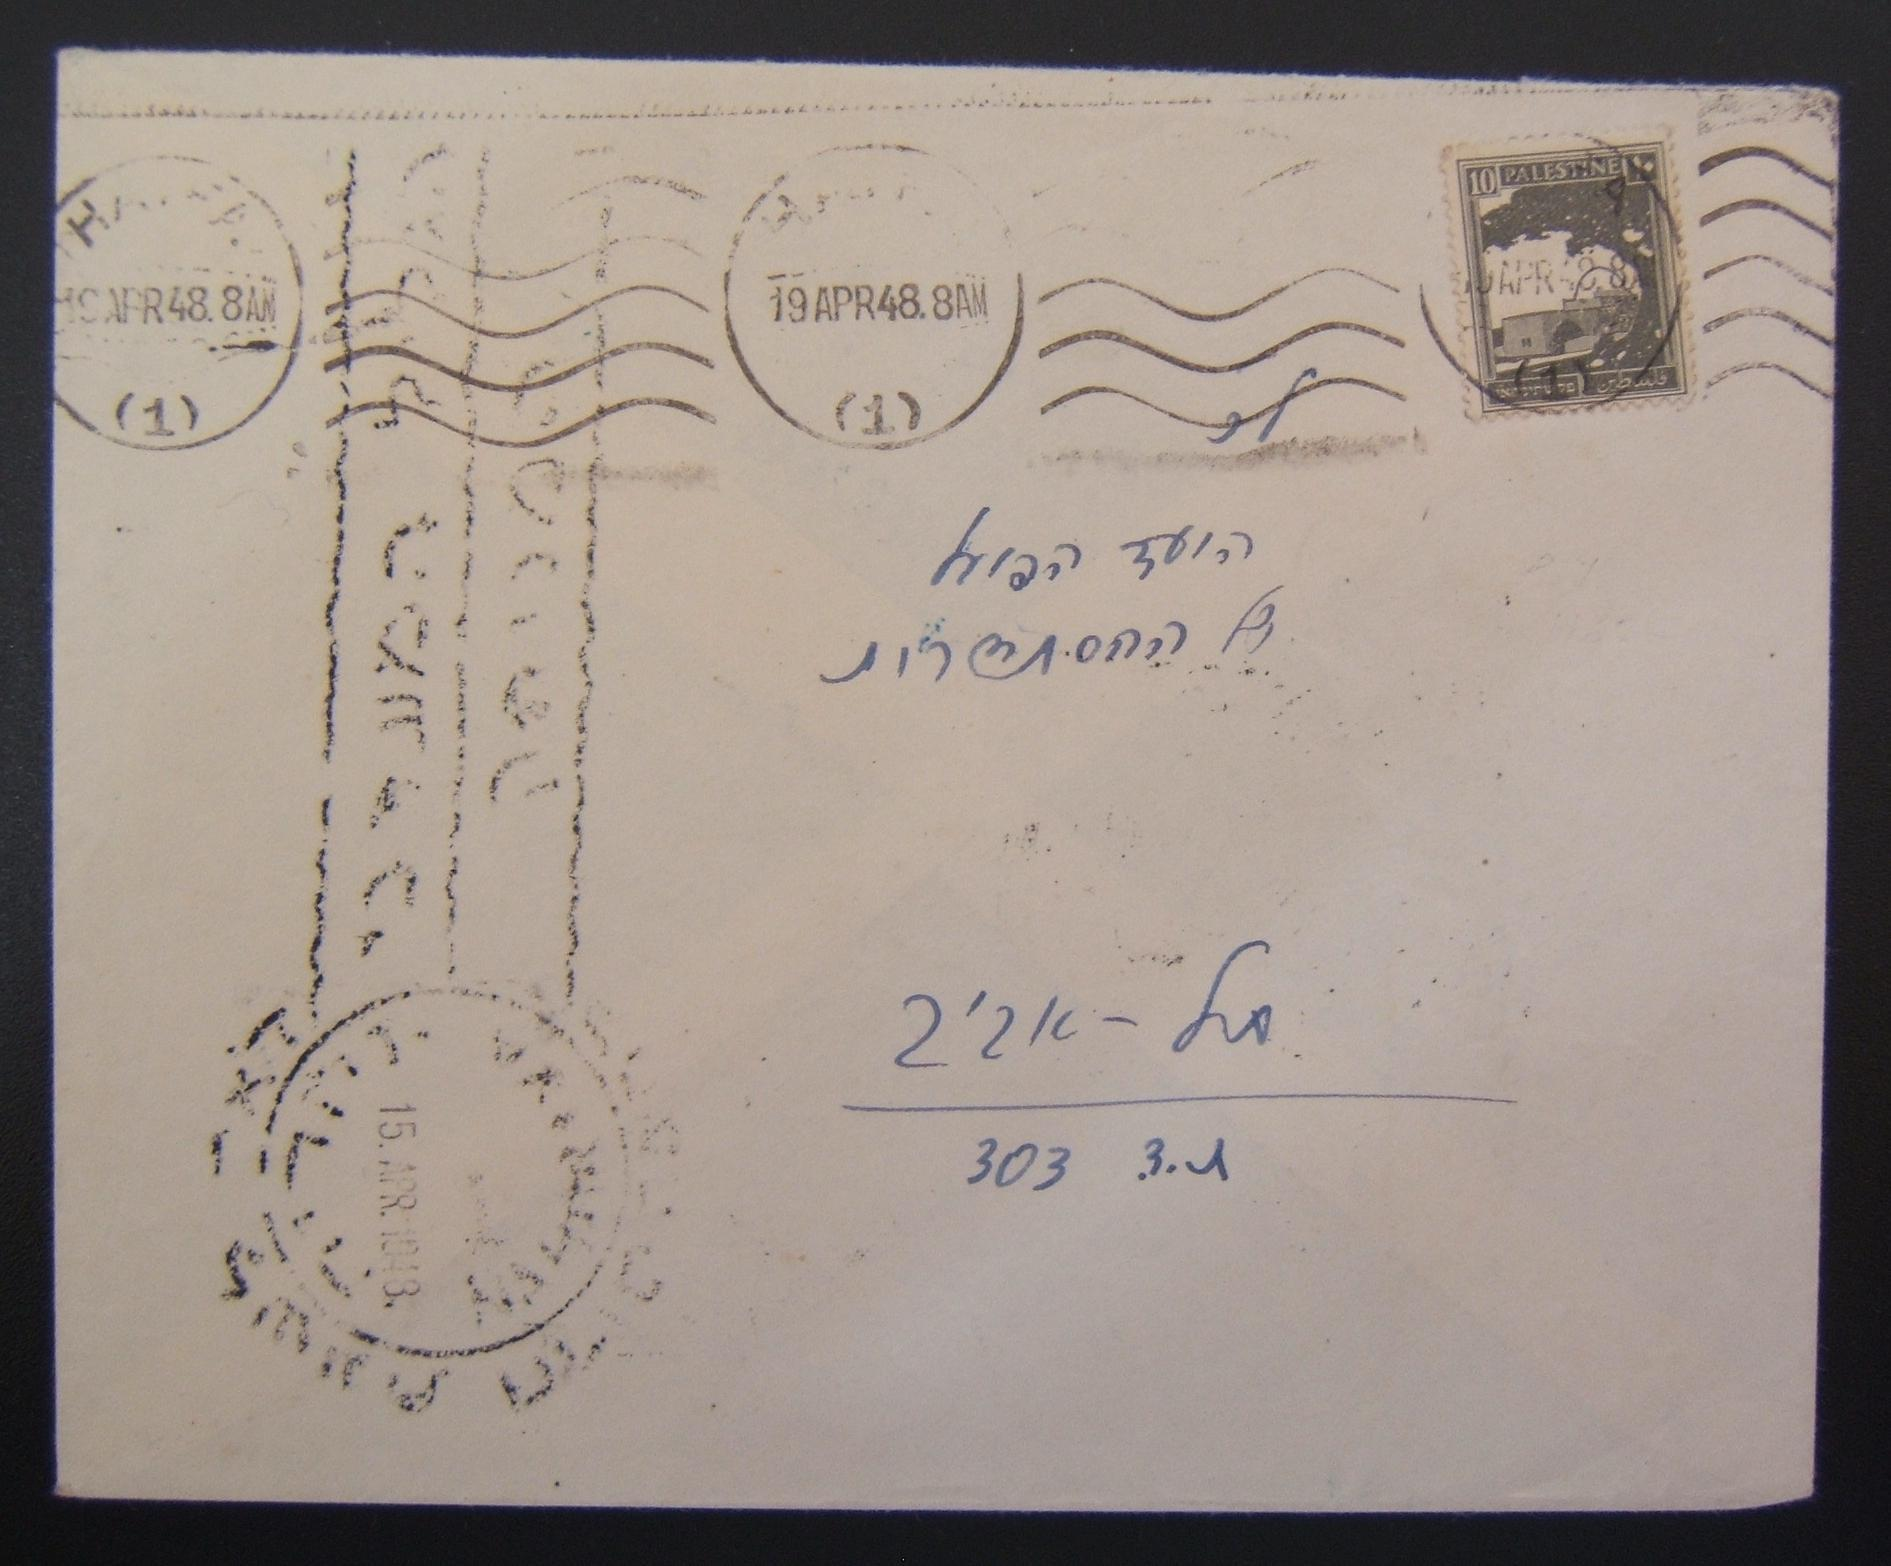 Nahariya emergency post slogans: commercial cover to Tel Aviv 14 April 1948 via Haifa 19 April (machine cancellation) postmarked with 5th Nahariaya slogan (Ba C6; 2 strikes front a